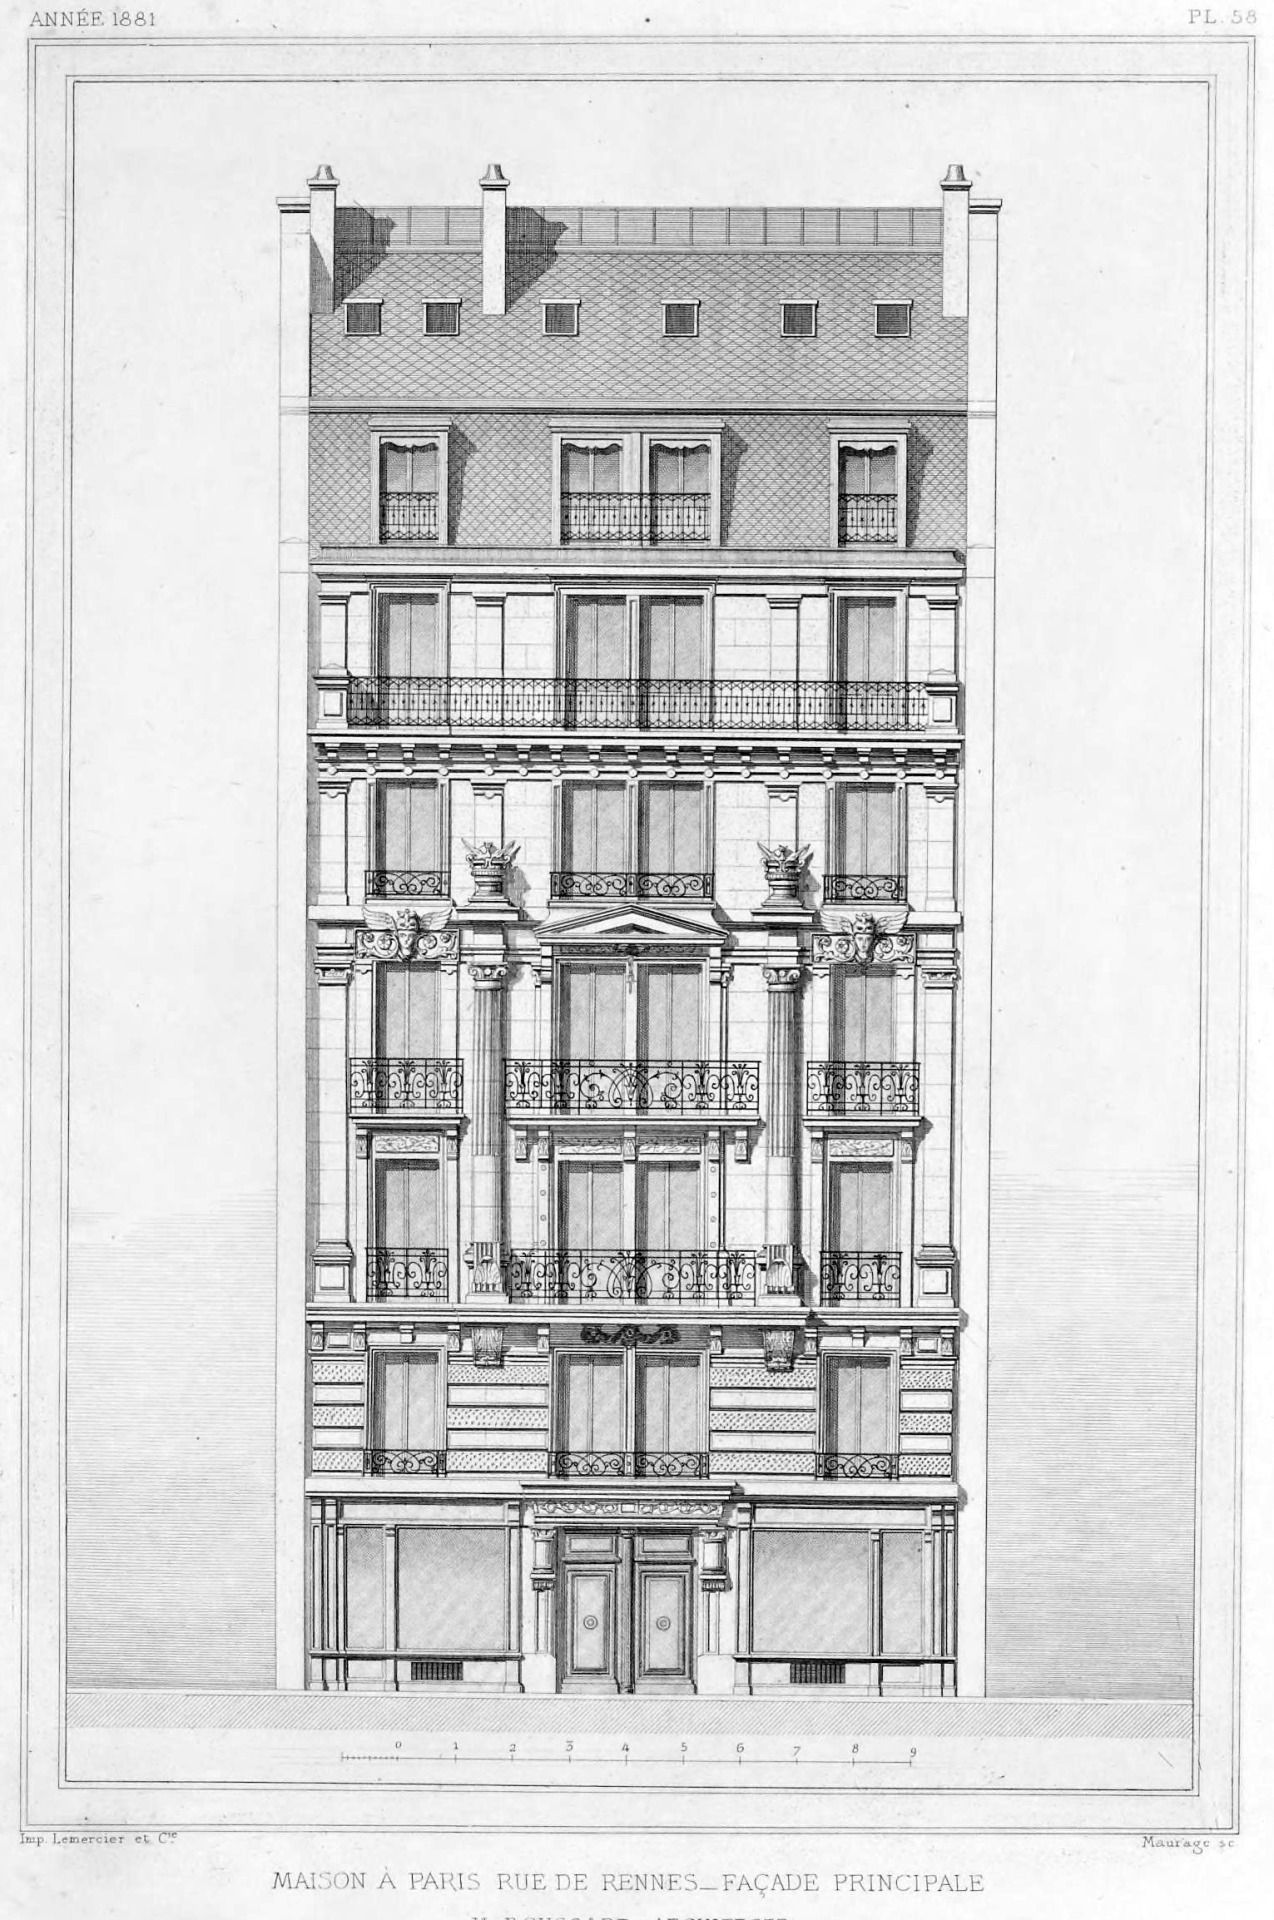 Elevation of a residential building on rue de rennes for Residential architectural drawings